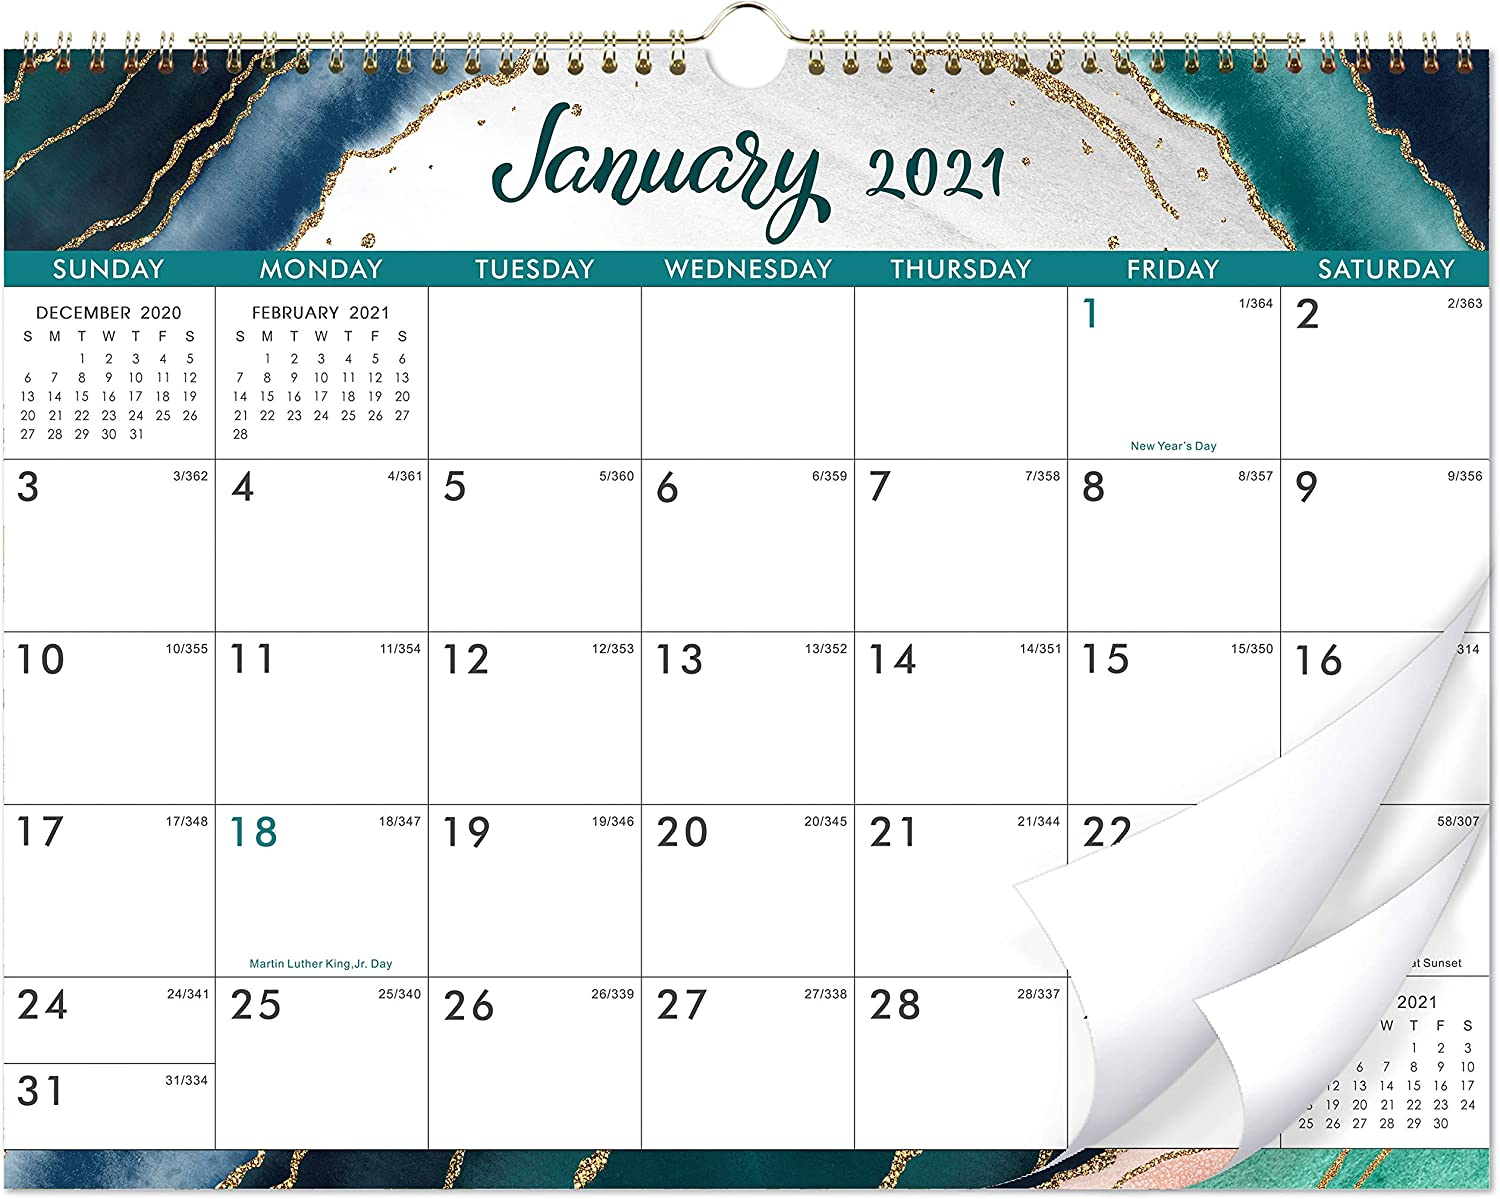 "2021 Calendar - 12 Monthly Wall Calendar with Thick Paper, 14"" x 11"", Jan. 2021 - Dec. 2021, Twin-Wire Binding + Hanging Hook + Unuled Blocks with Julian Date, Horizontal - Blue Gilding"